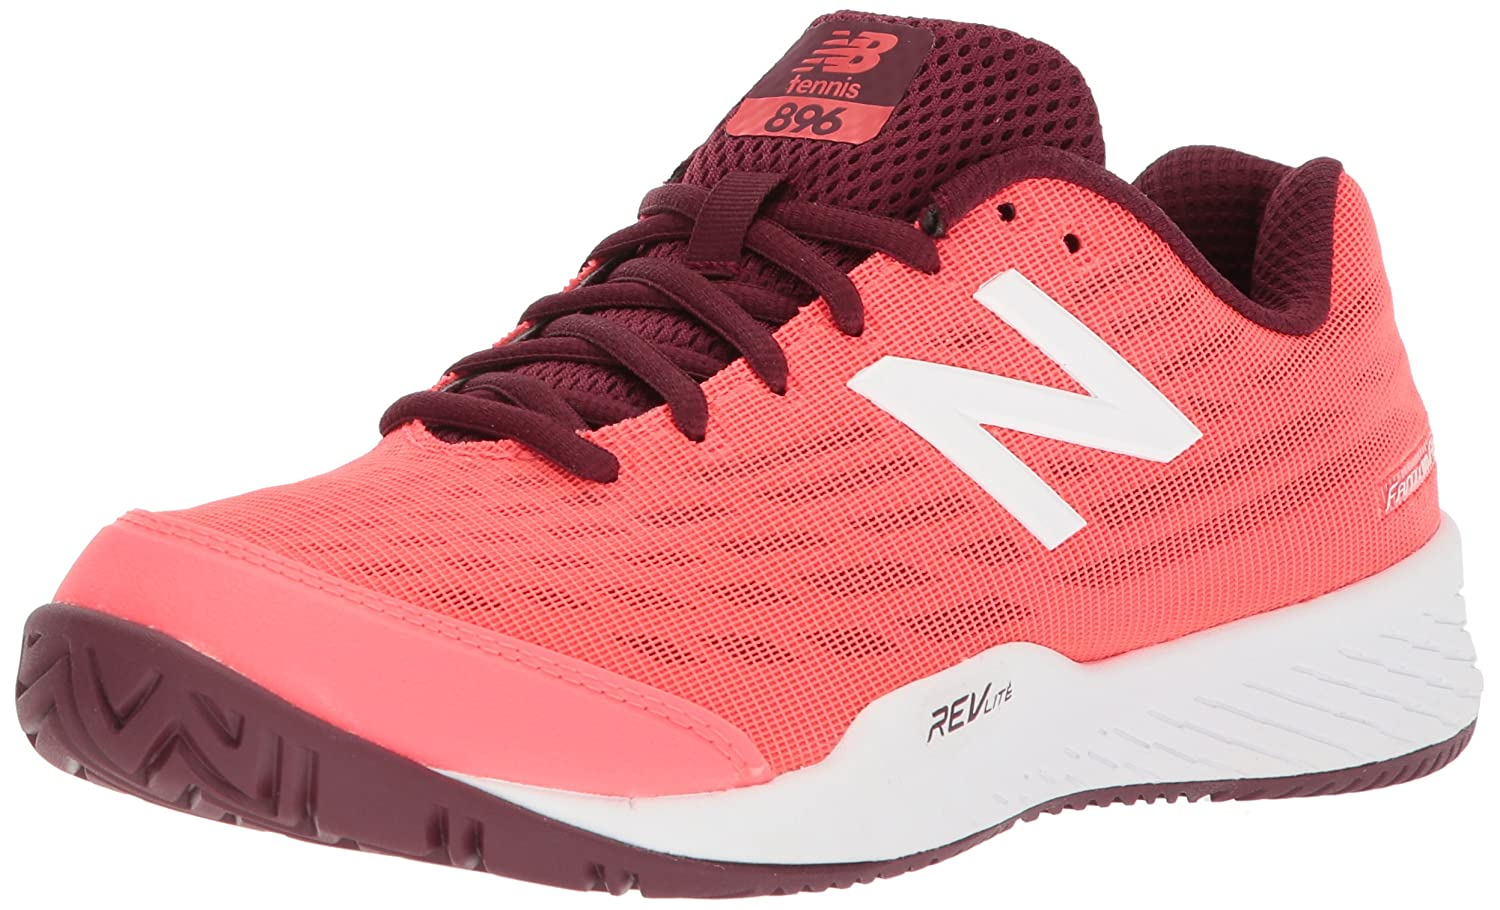 New Balance Women's 896v2 Hard Court Tennis Shoe B06XSFM344 75 D US|Vivid Coral/Vivid Coral